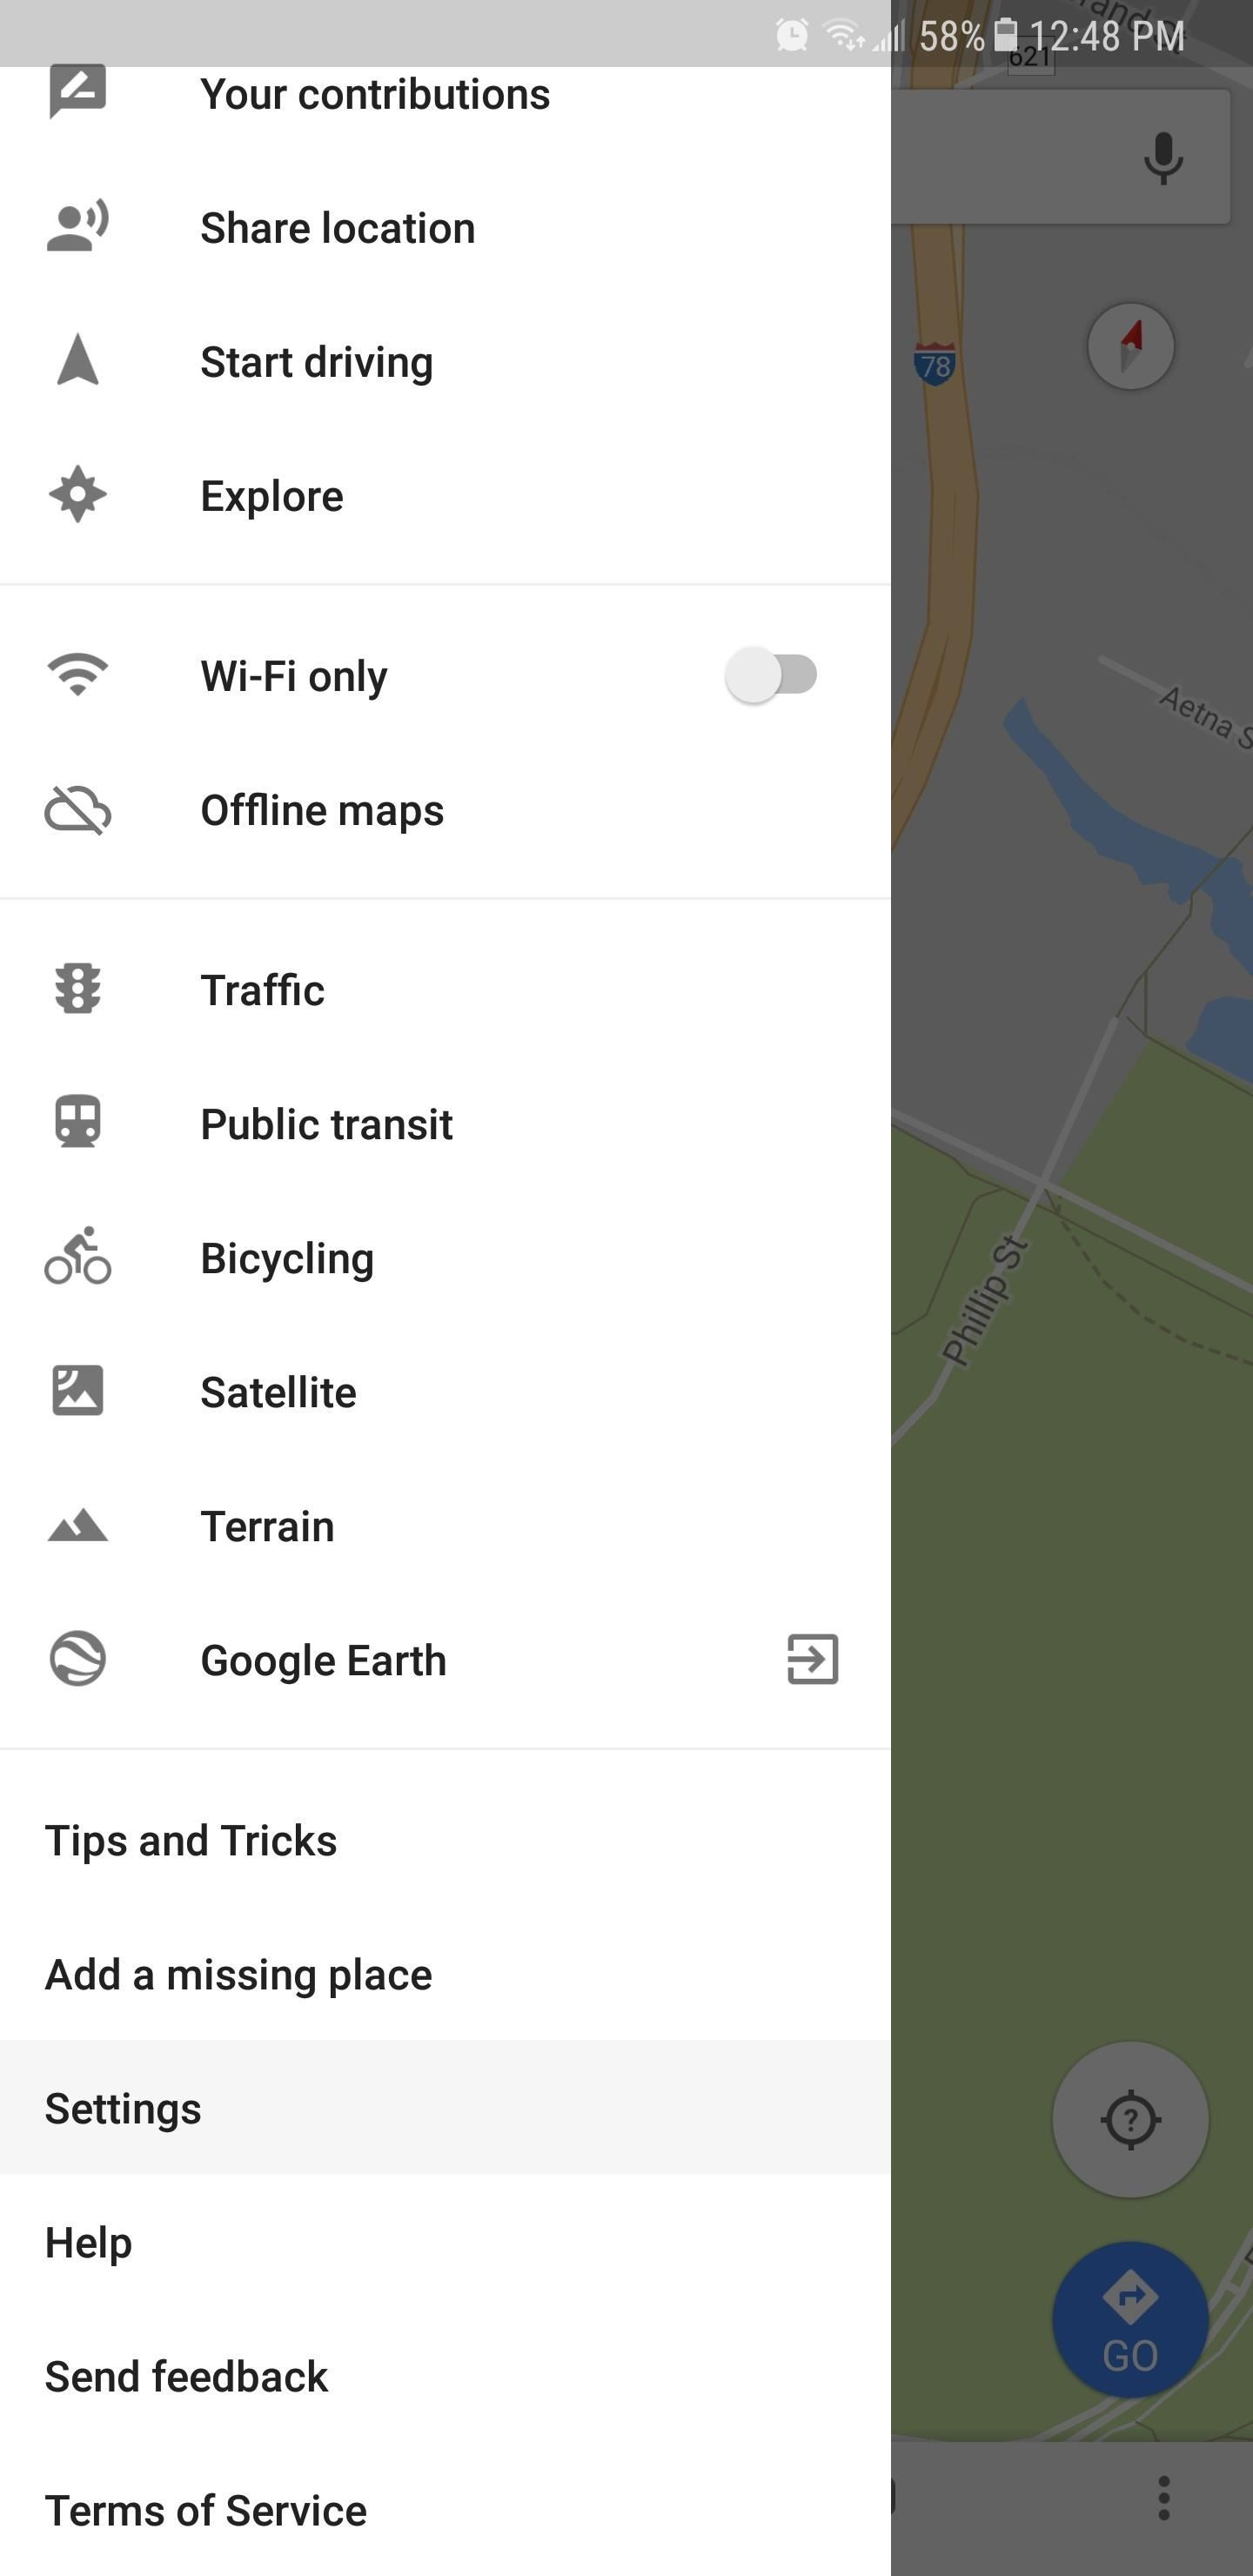 Google Maps 101: How to Measure the Distance Between 2 or More Points on Android